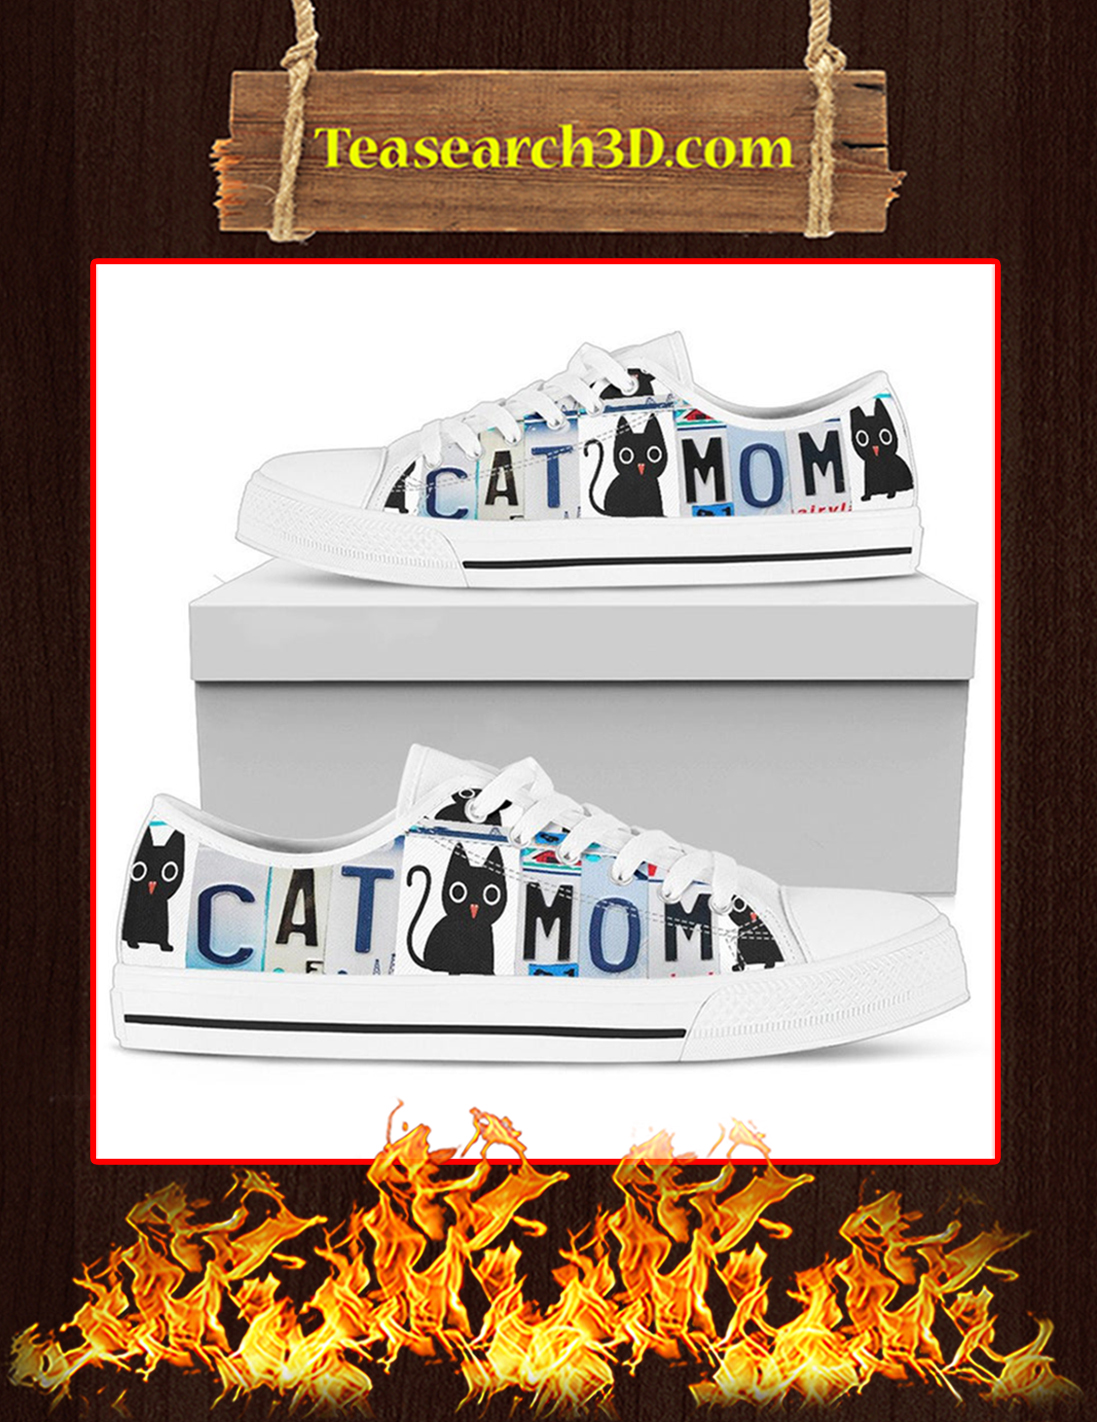 Cat Mom Low Top Shoes - Pic 3